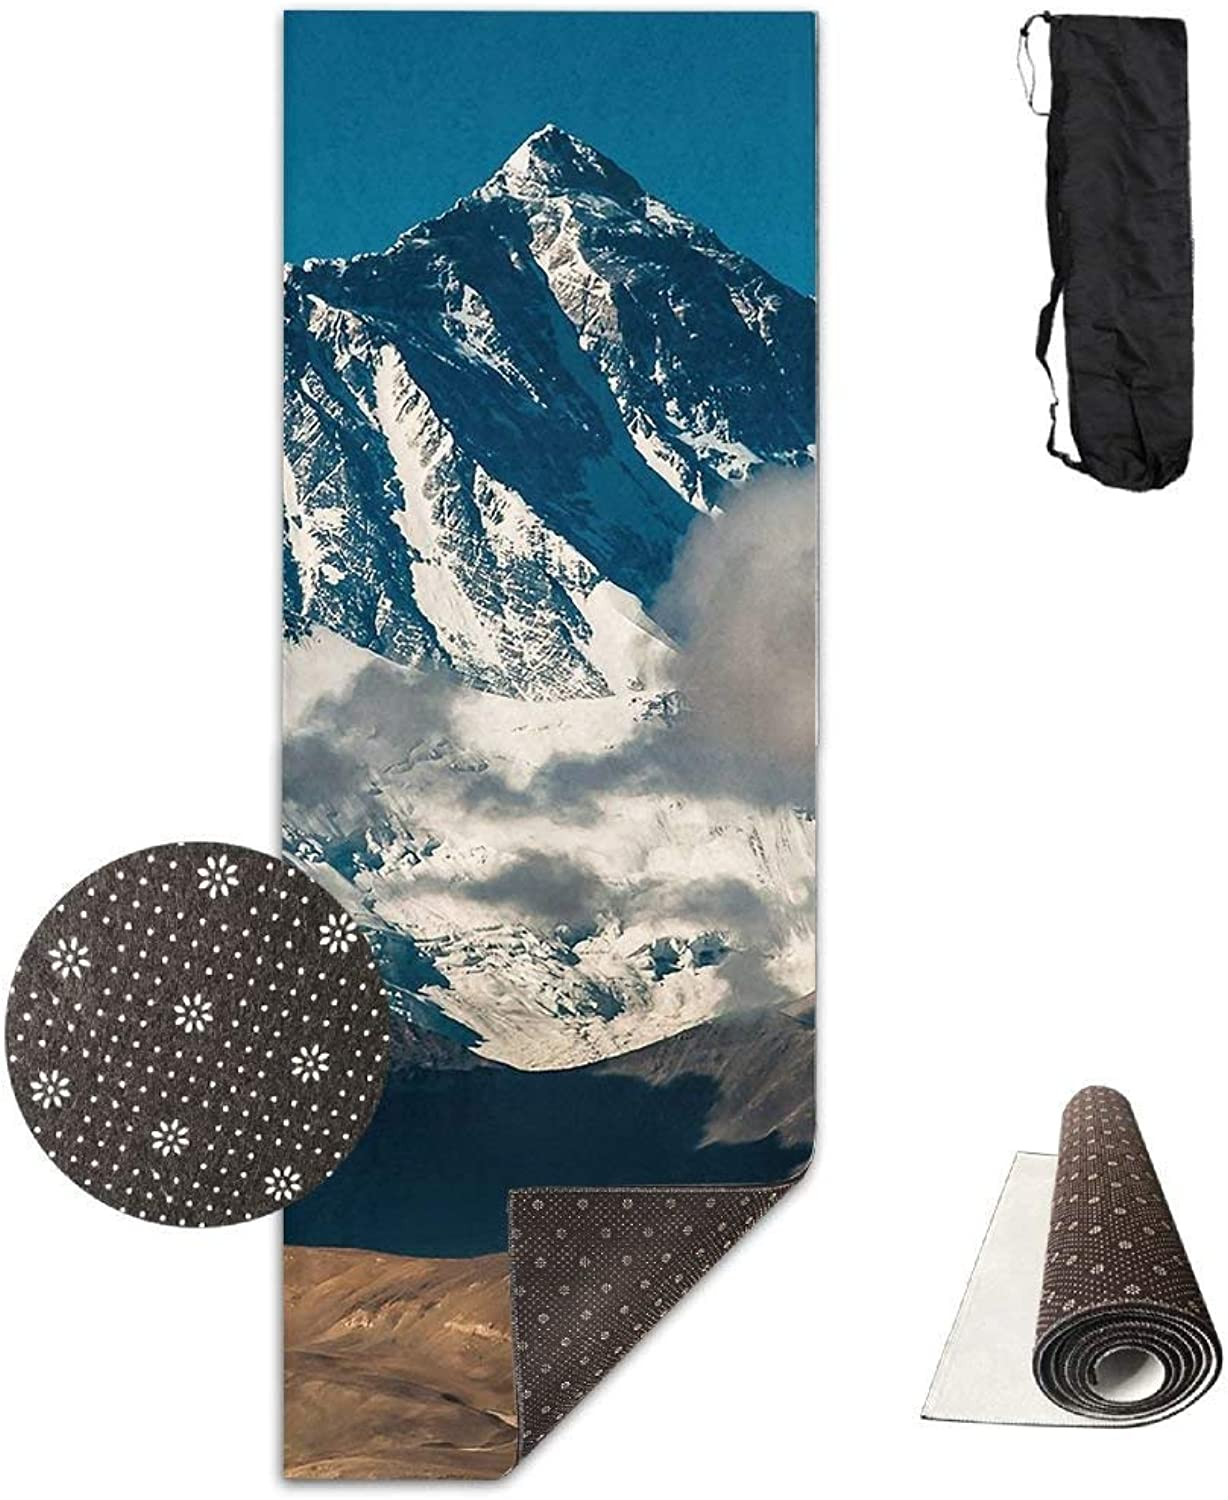 Yoga Mat Non Slip Mountain Peak Printed 24 X 71 Inches Premium for Fitness Exercise Pilates with Carrying Strap